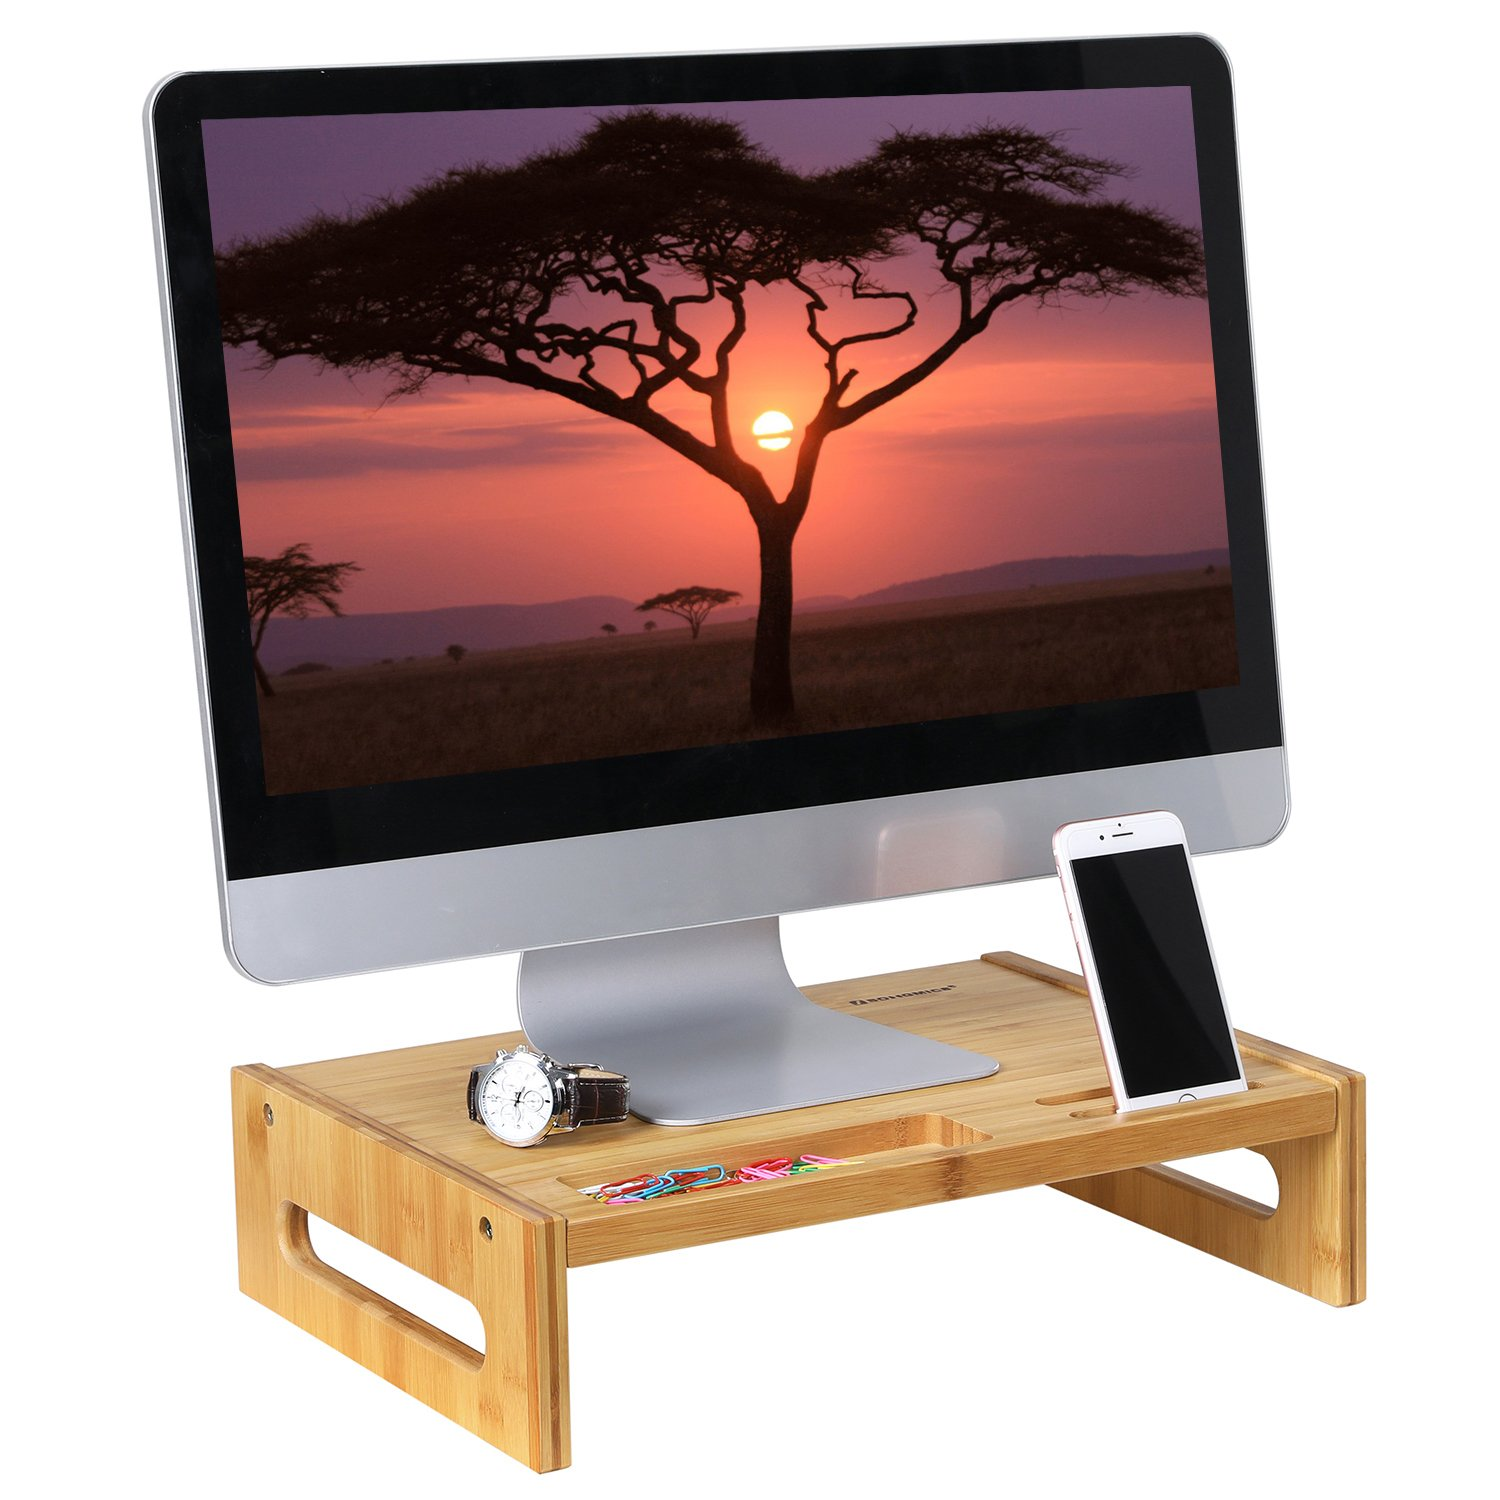 SONGMICS Bamboo Monitor Stand Desktop Riser Desk Organizer with Storage Slots for Computer Laptop TV Natural ULLD211N by SONGMICS